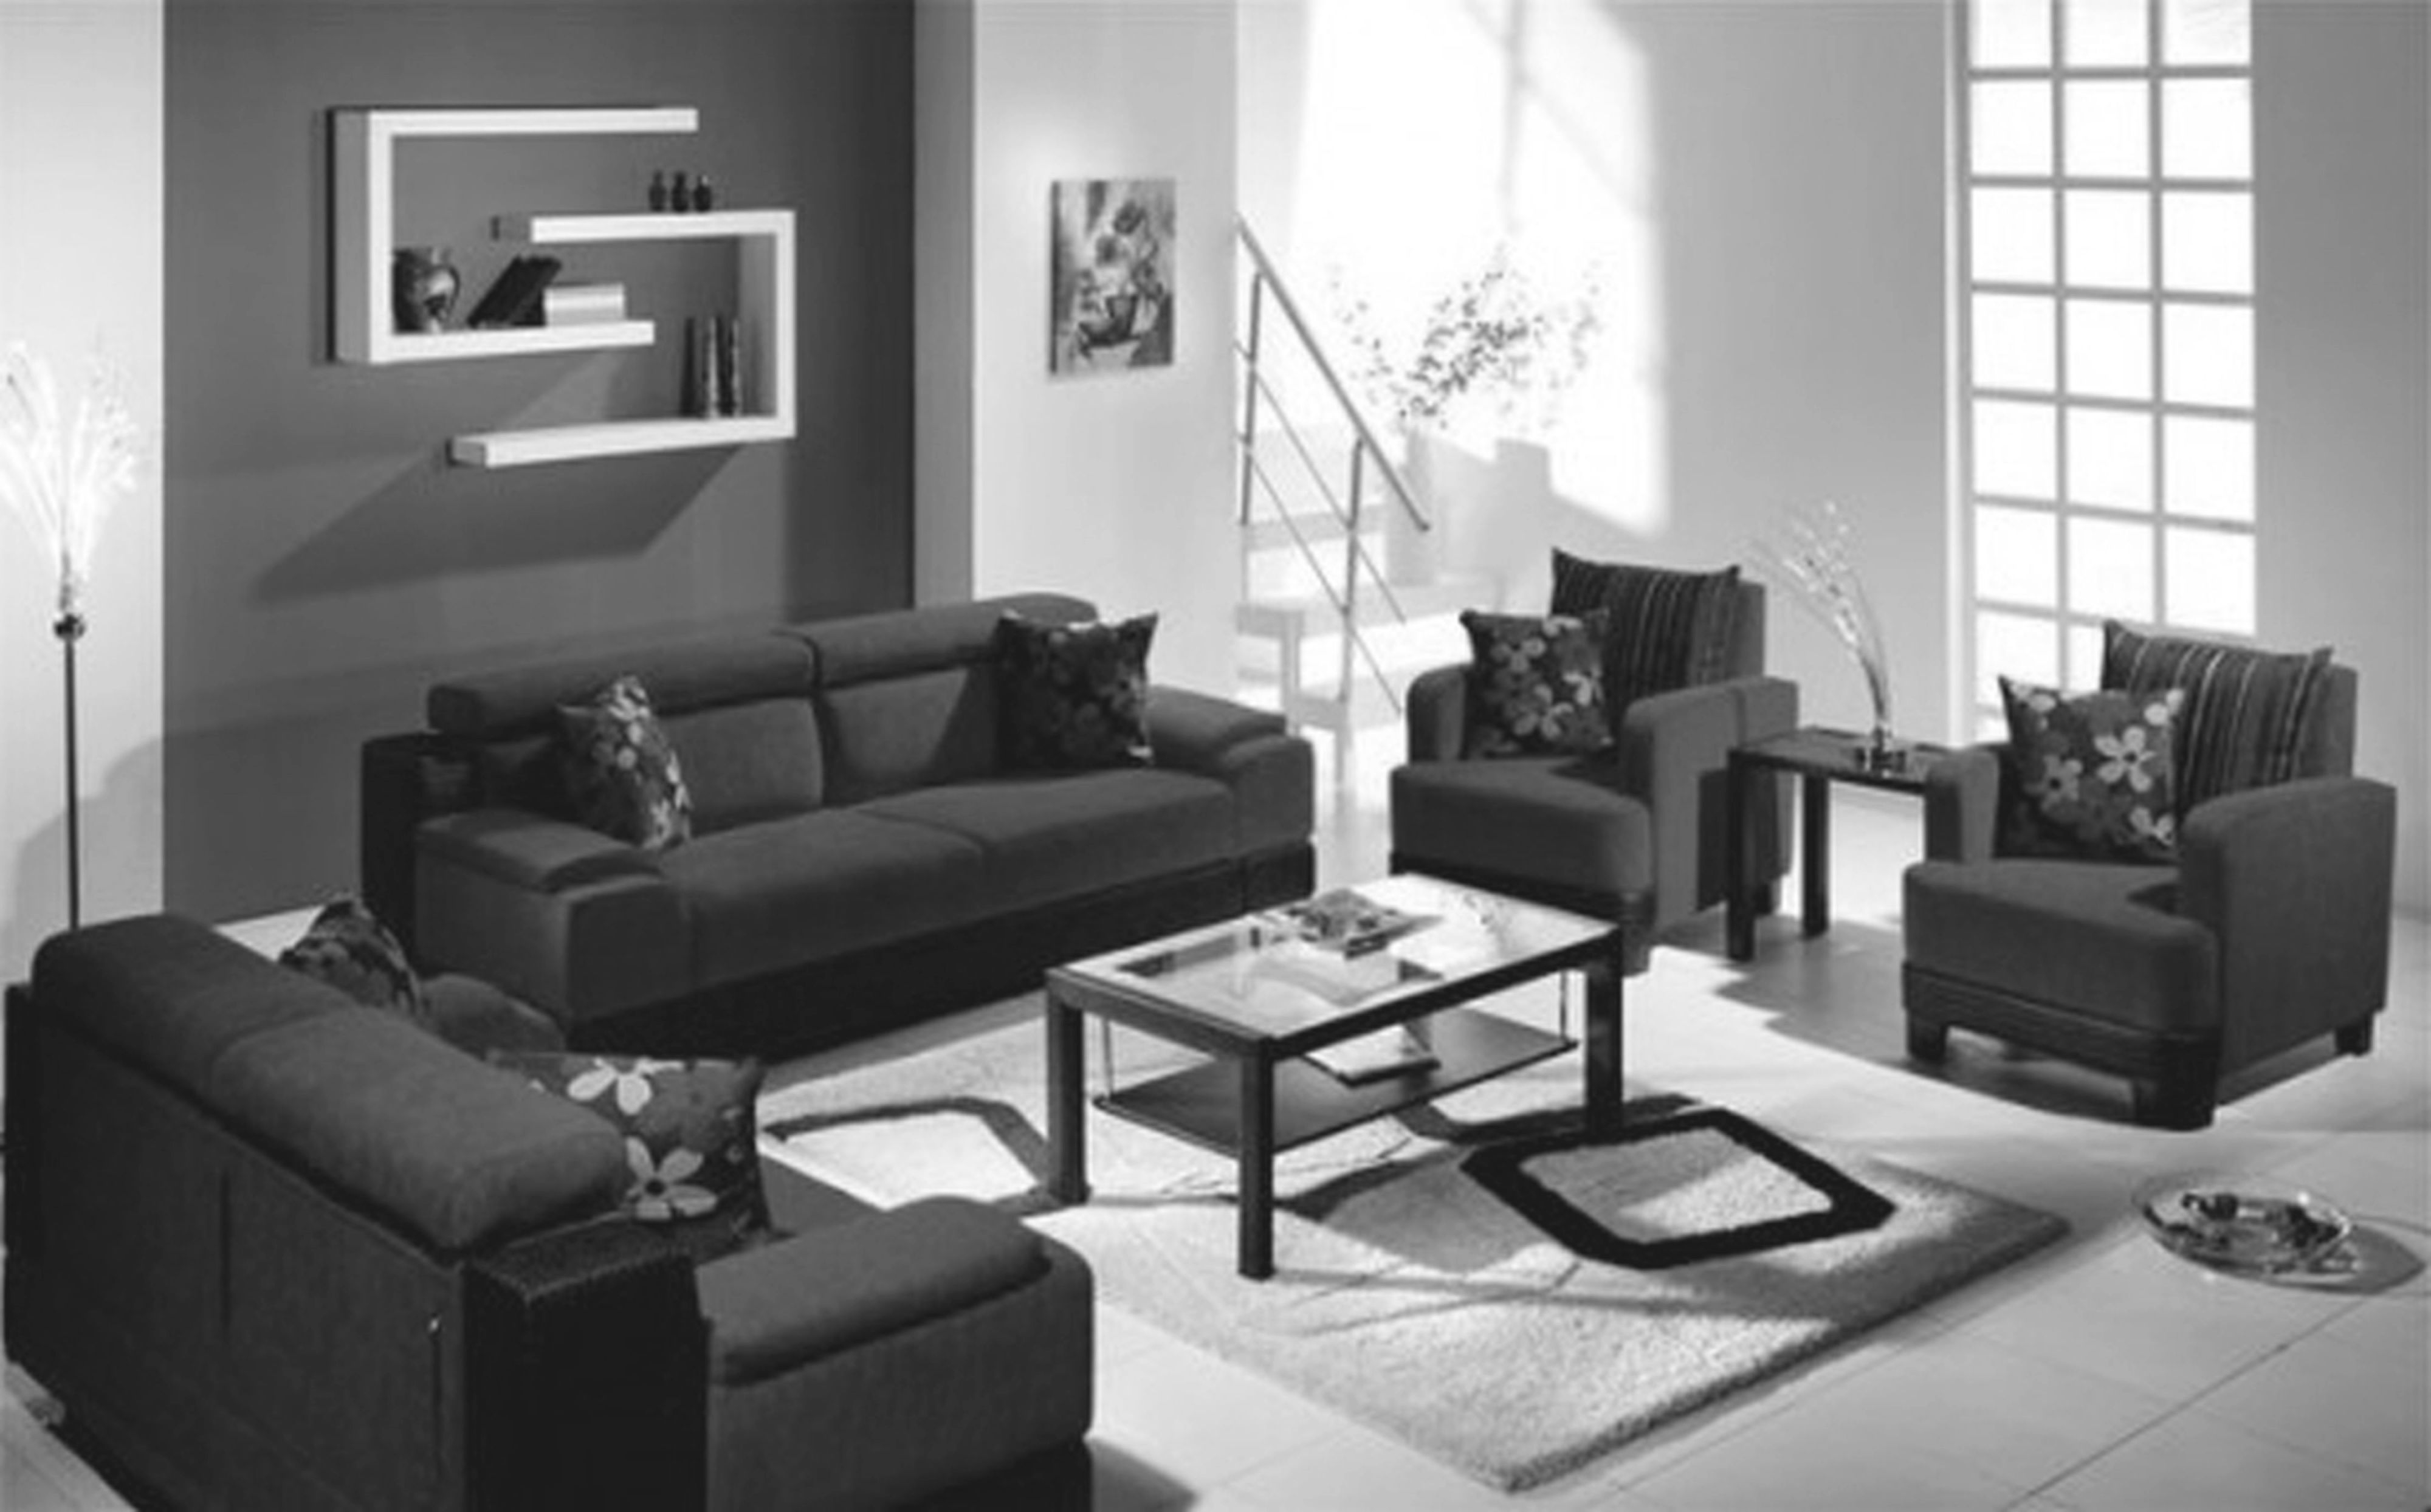 Interior Design Living Room Ideas Uk For Pretty Contemporary within Monochrome Living Room Decorating Ideas